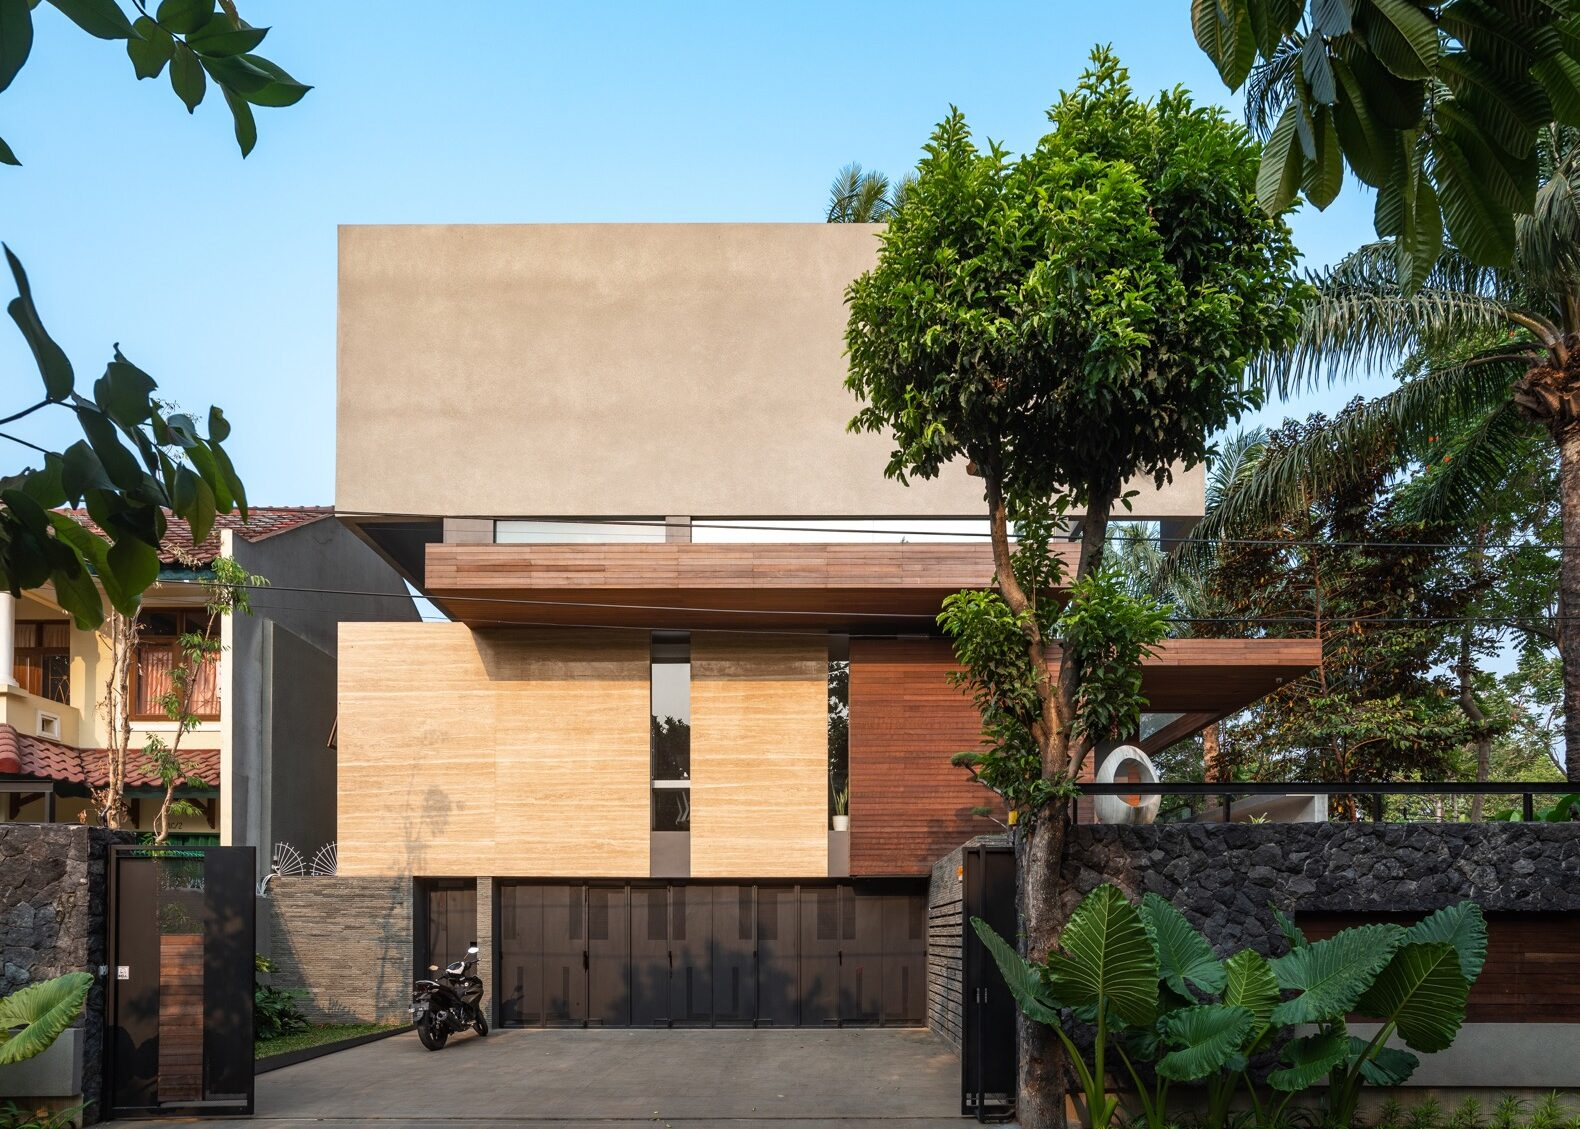 a multi-story home with a facade composed of several different materials, including both light and dark colored wood